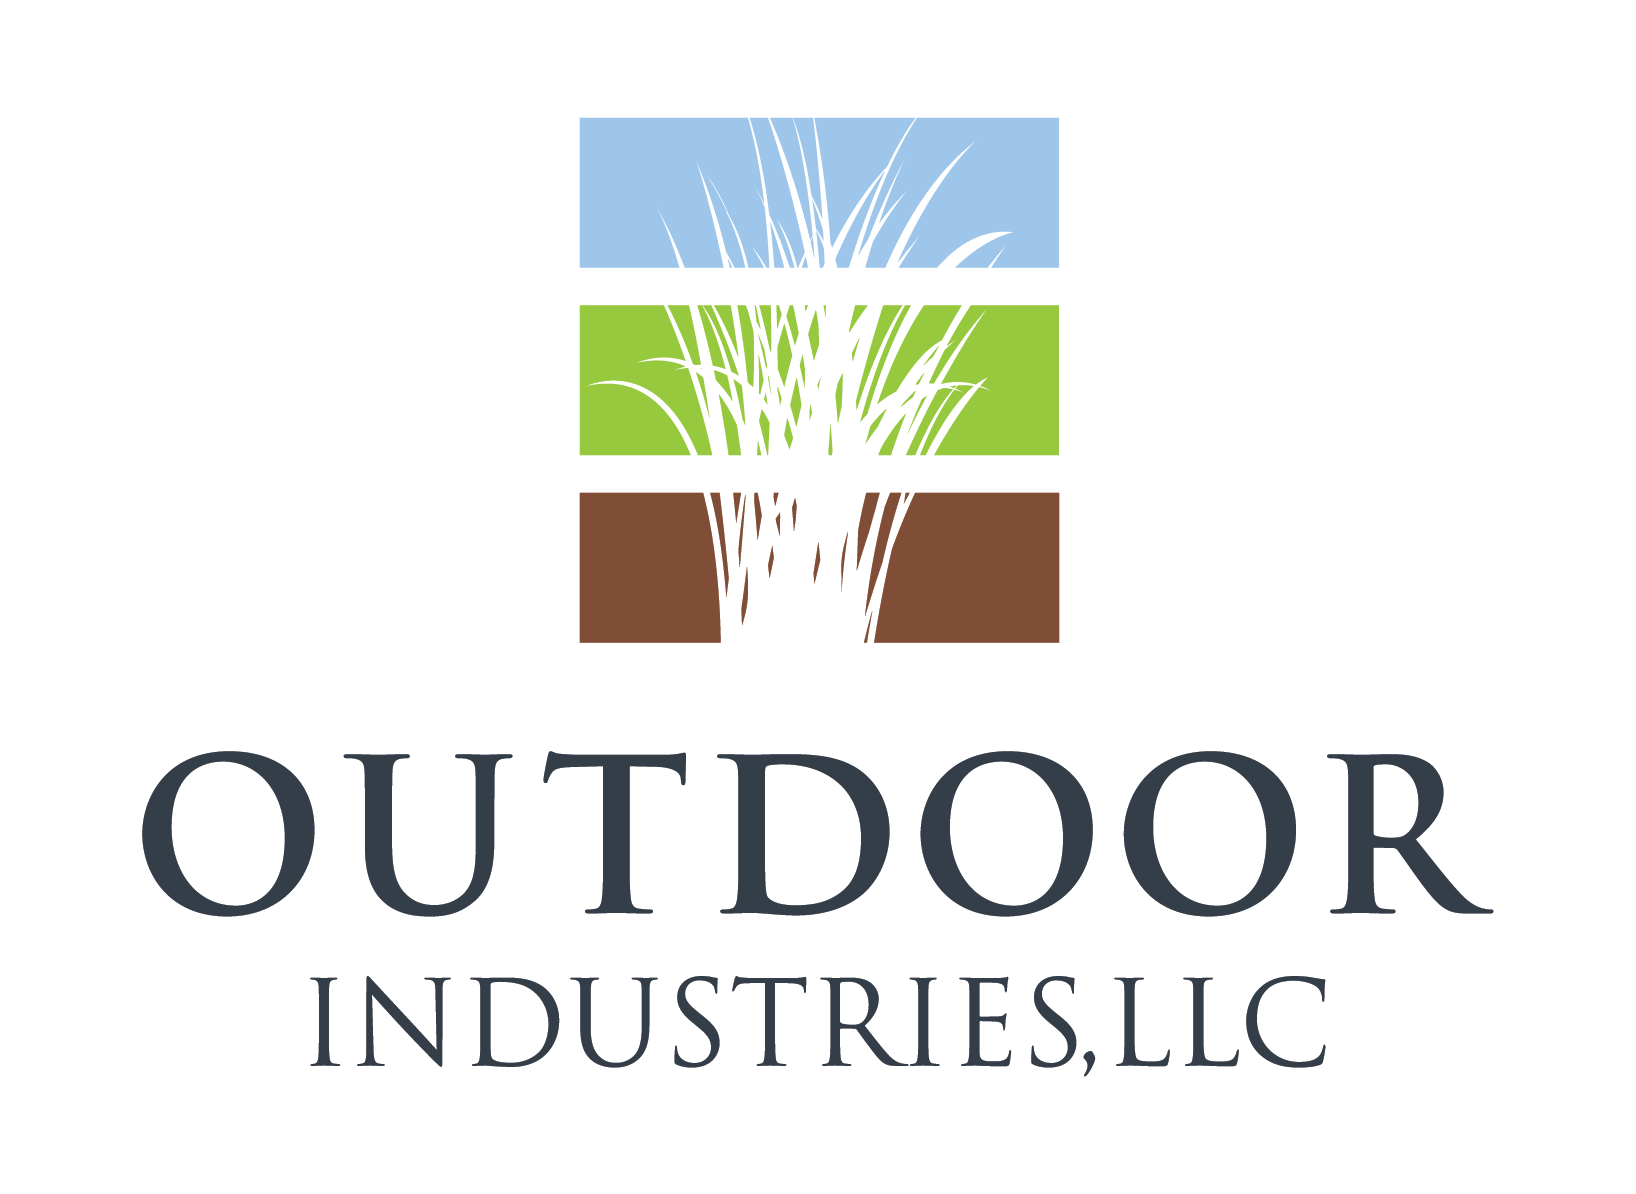 Outdoor Industries, LLC